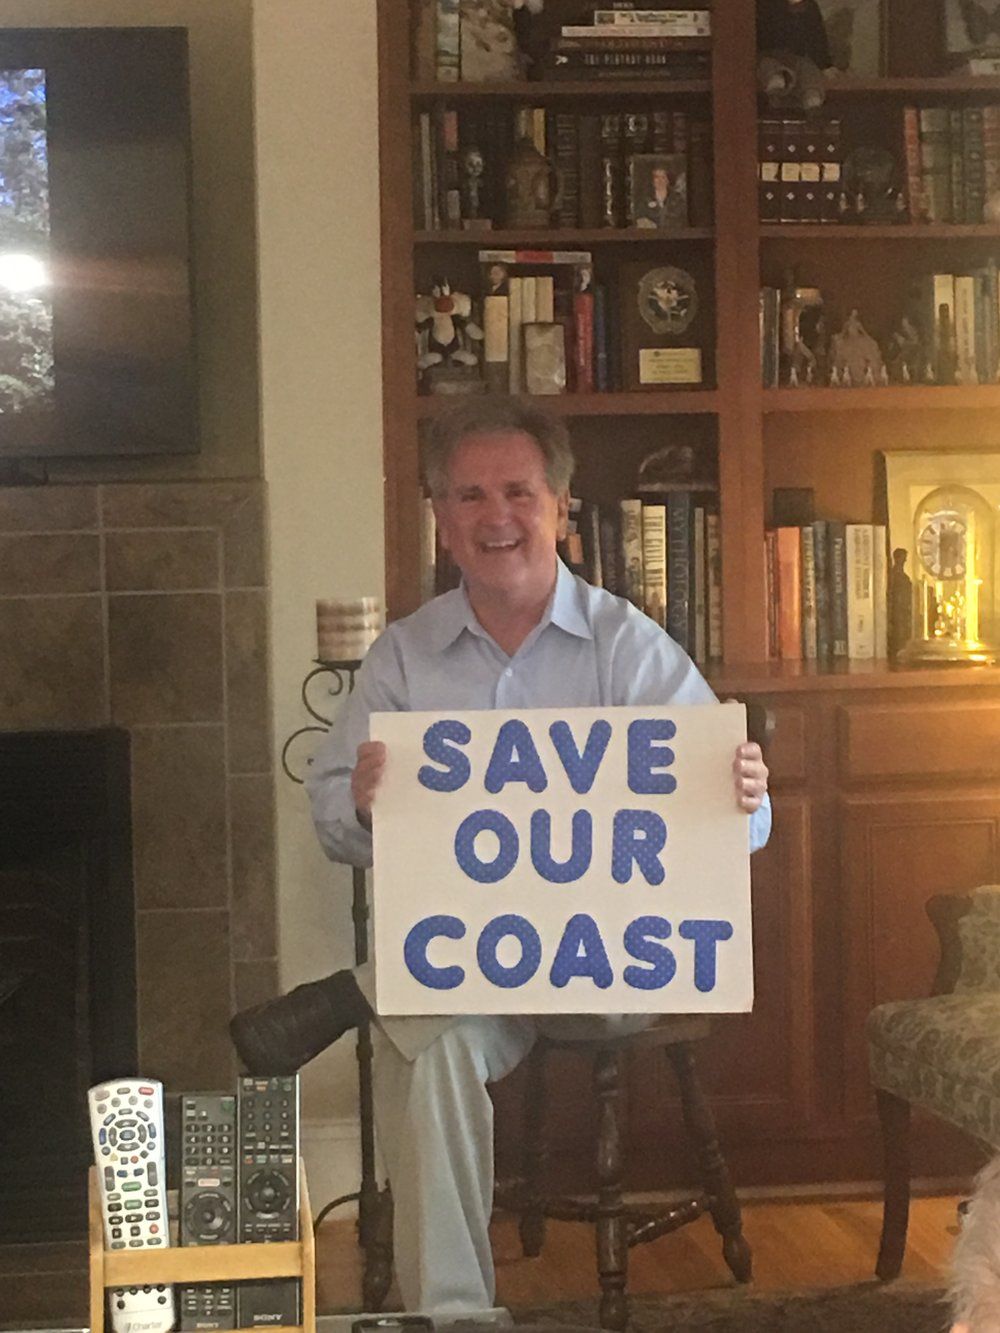 If you oppose offshore drilling...this is your candidate!